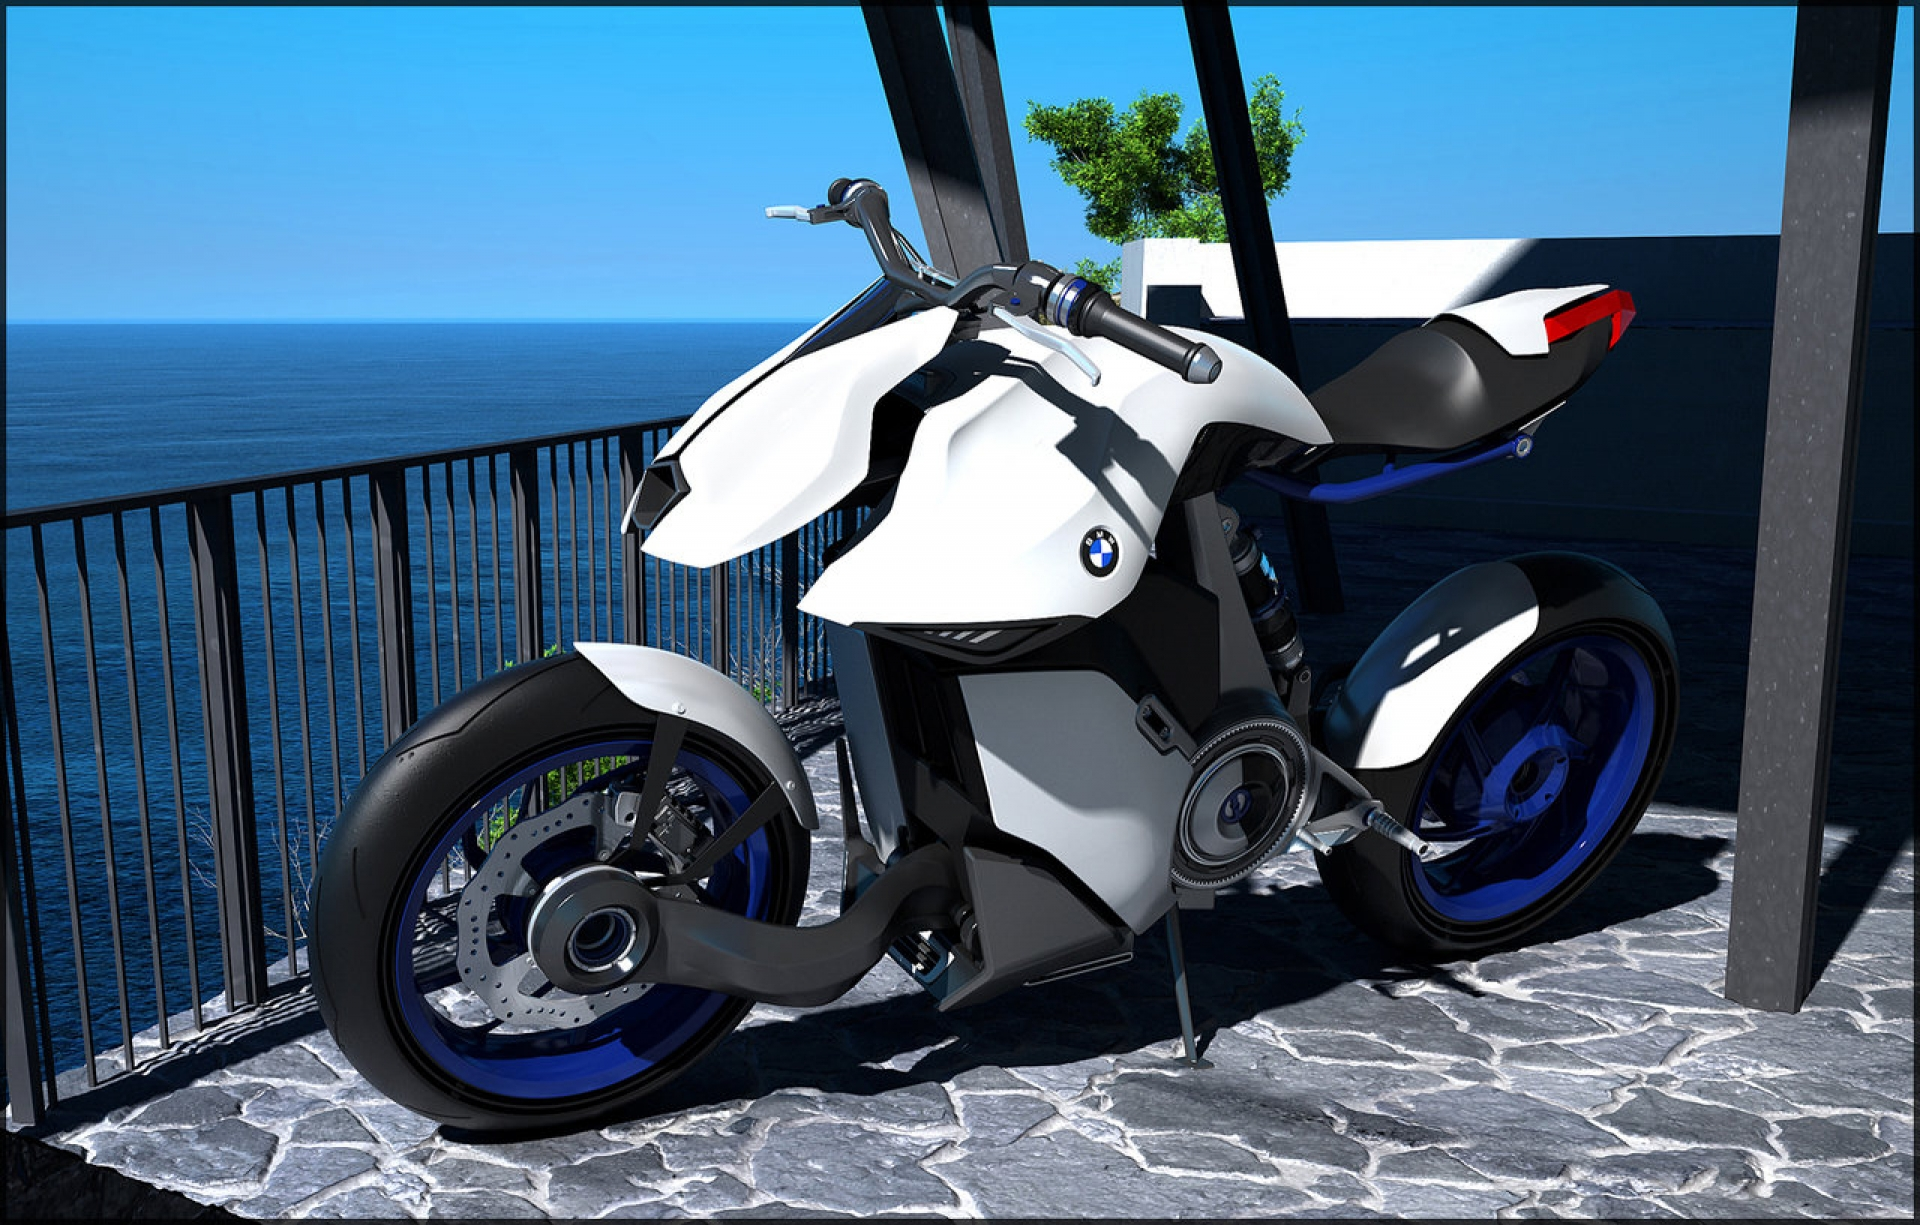 the helmet motorrad future s of bike bmw doesn a next t require ed motorcycle concept